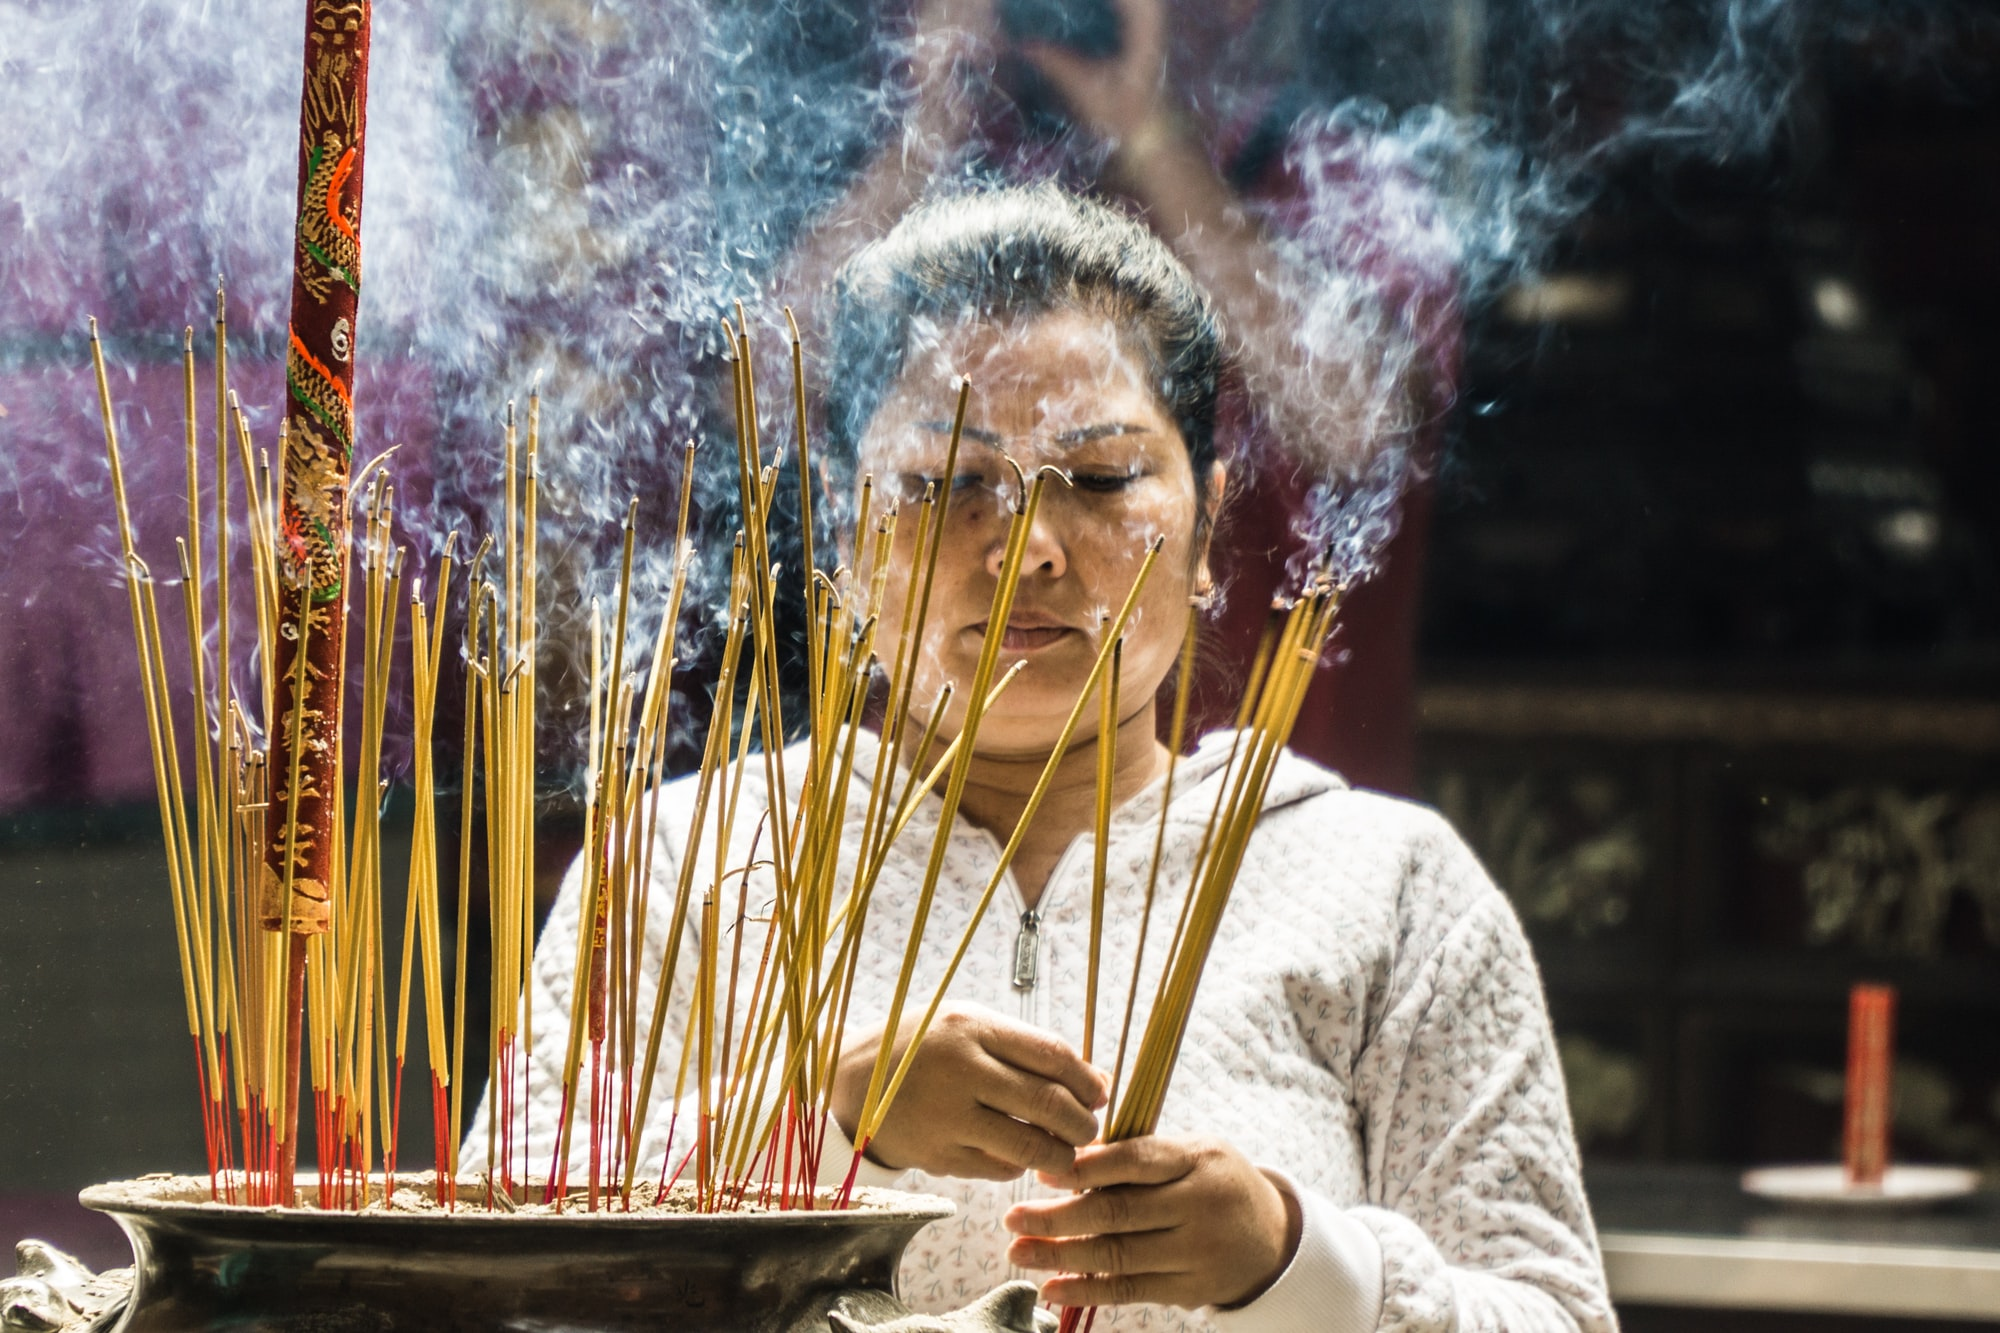 A woman takes part of a religious offering in a confucian temple in Ho Chi Minh City, Vietnam.